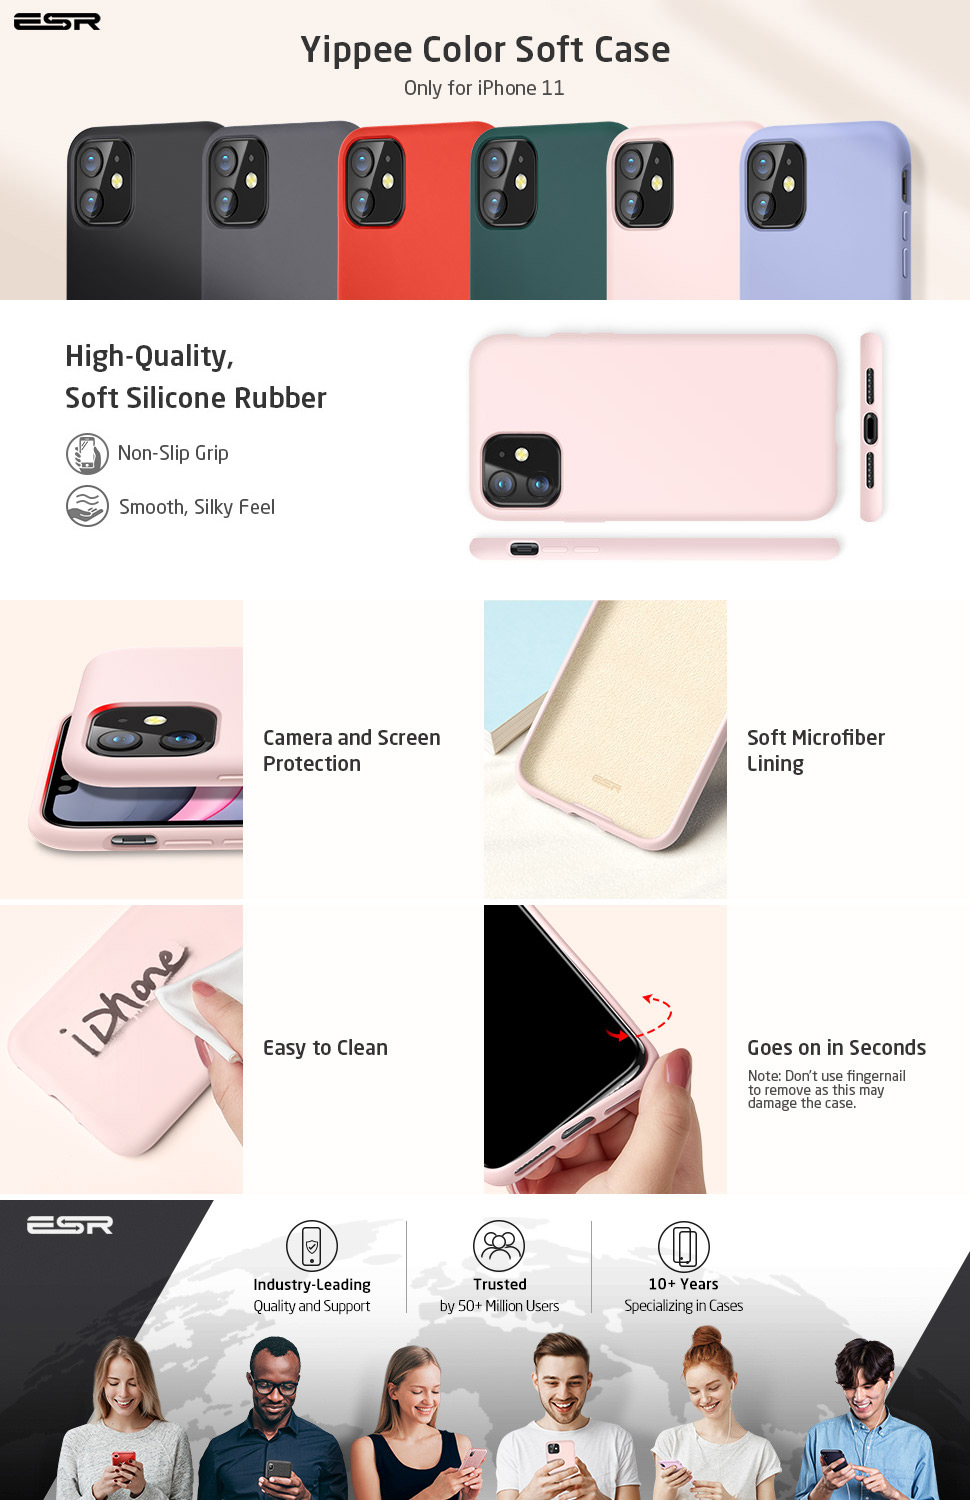 ESR Yippee Color case for iPhone 11, Gohub Shop